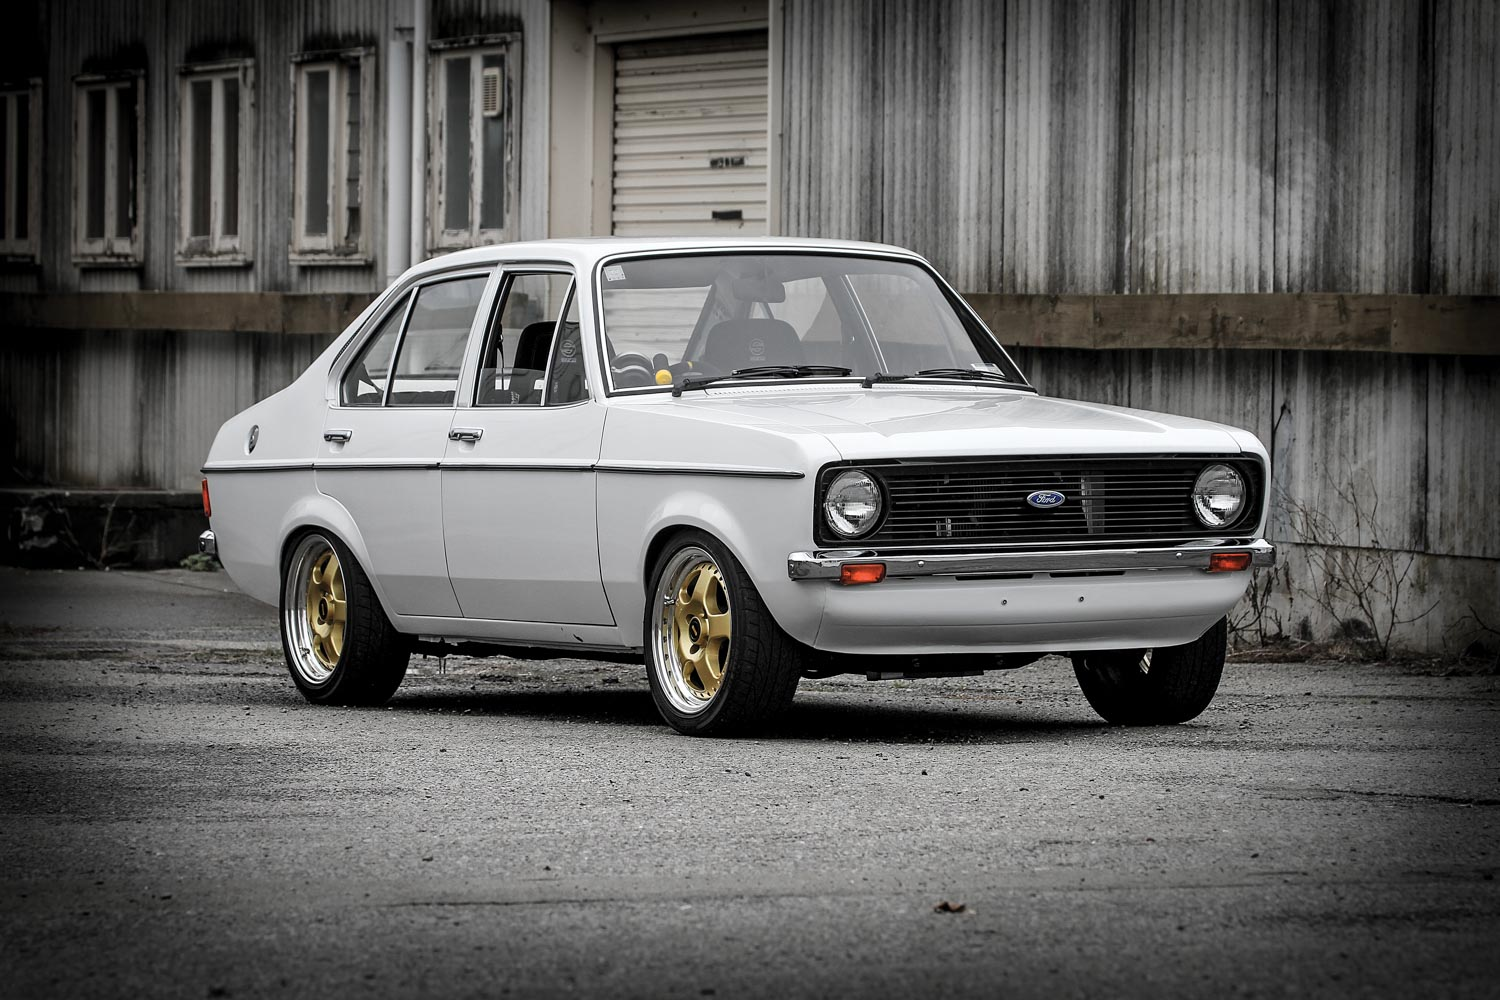 Ford Escort Mk2 Wallpapers Vehicles Hq Ford Escort Mk2 Pictures 4k Wallpapers 2019